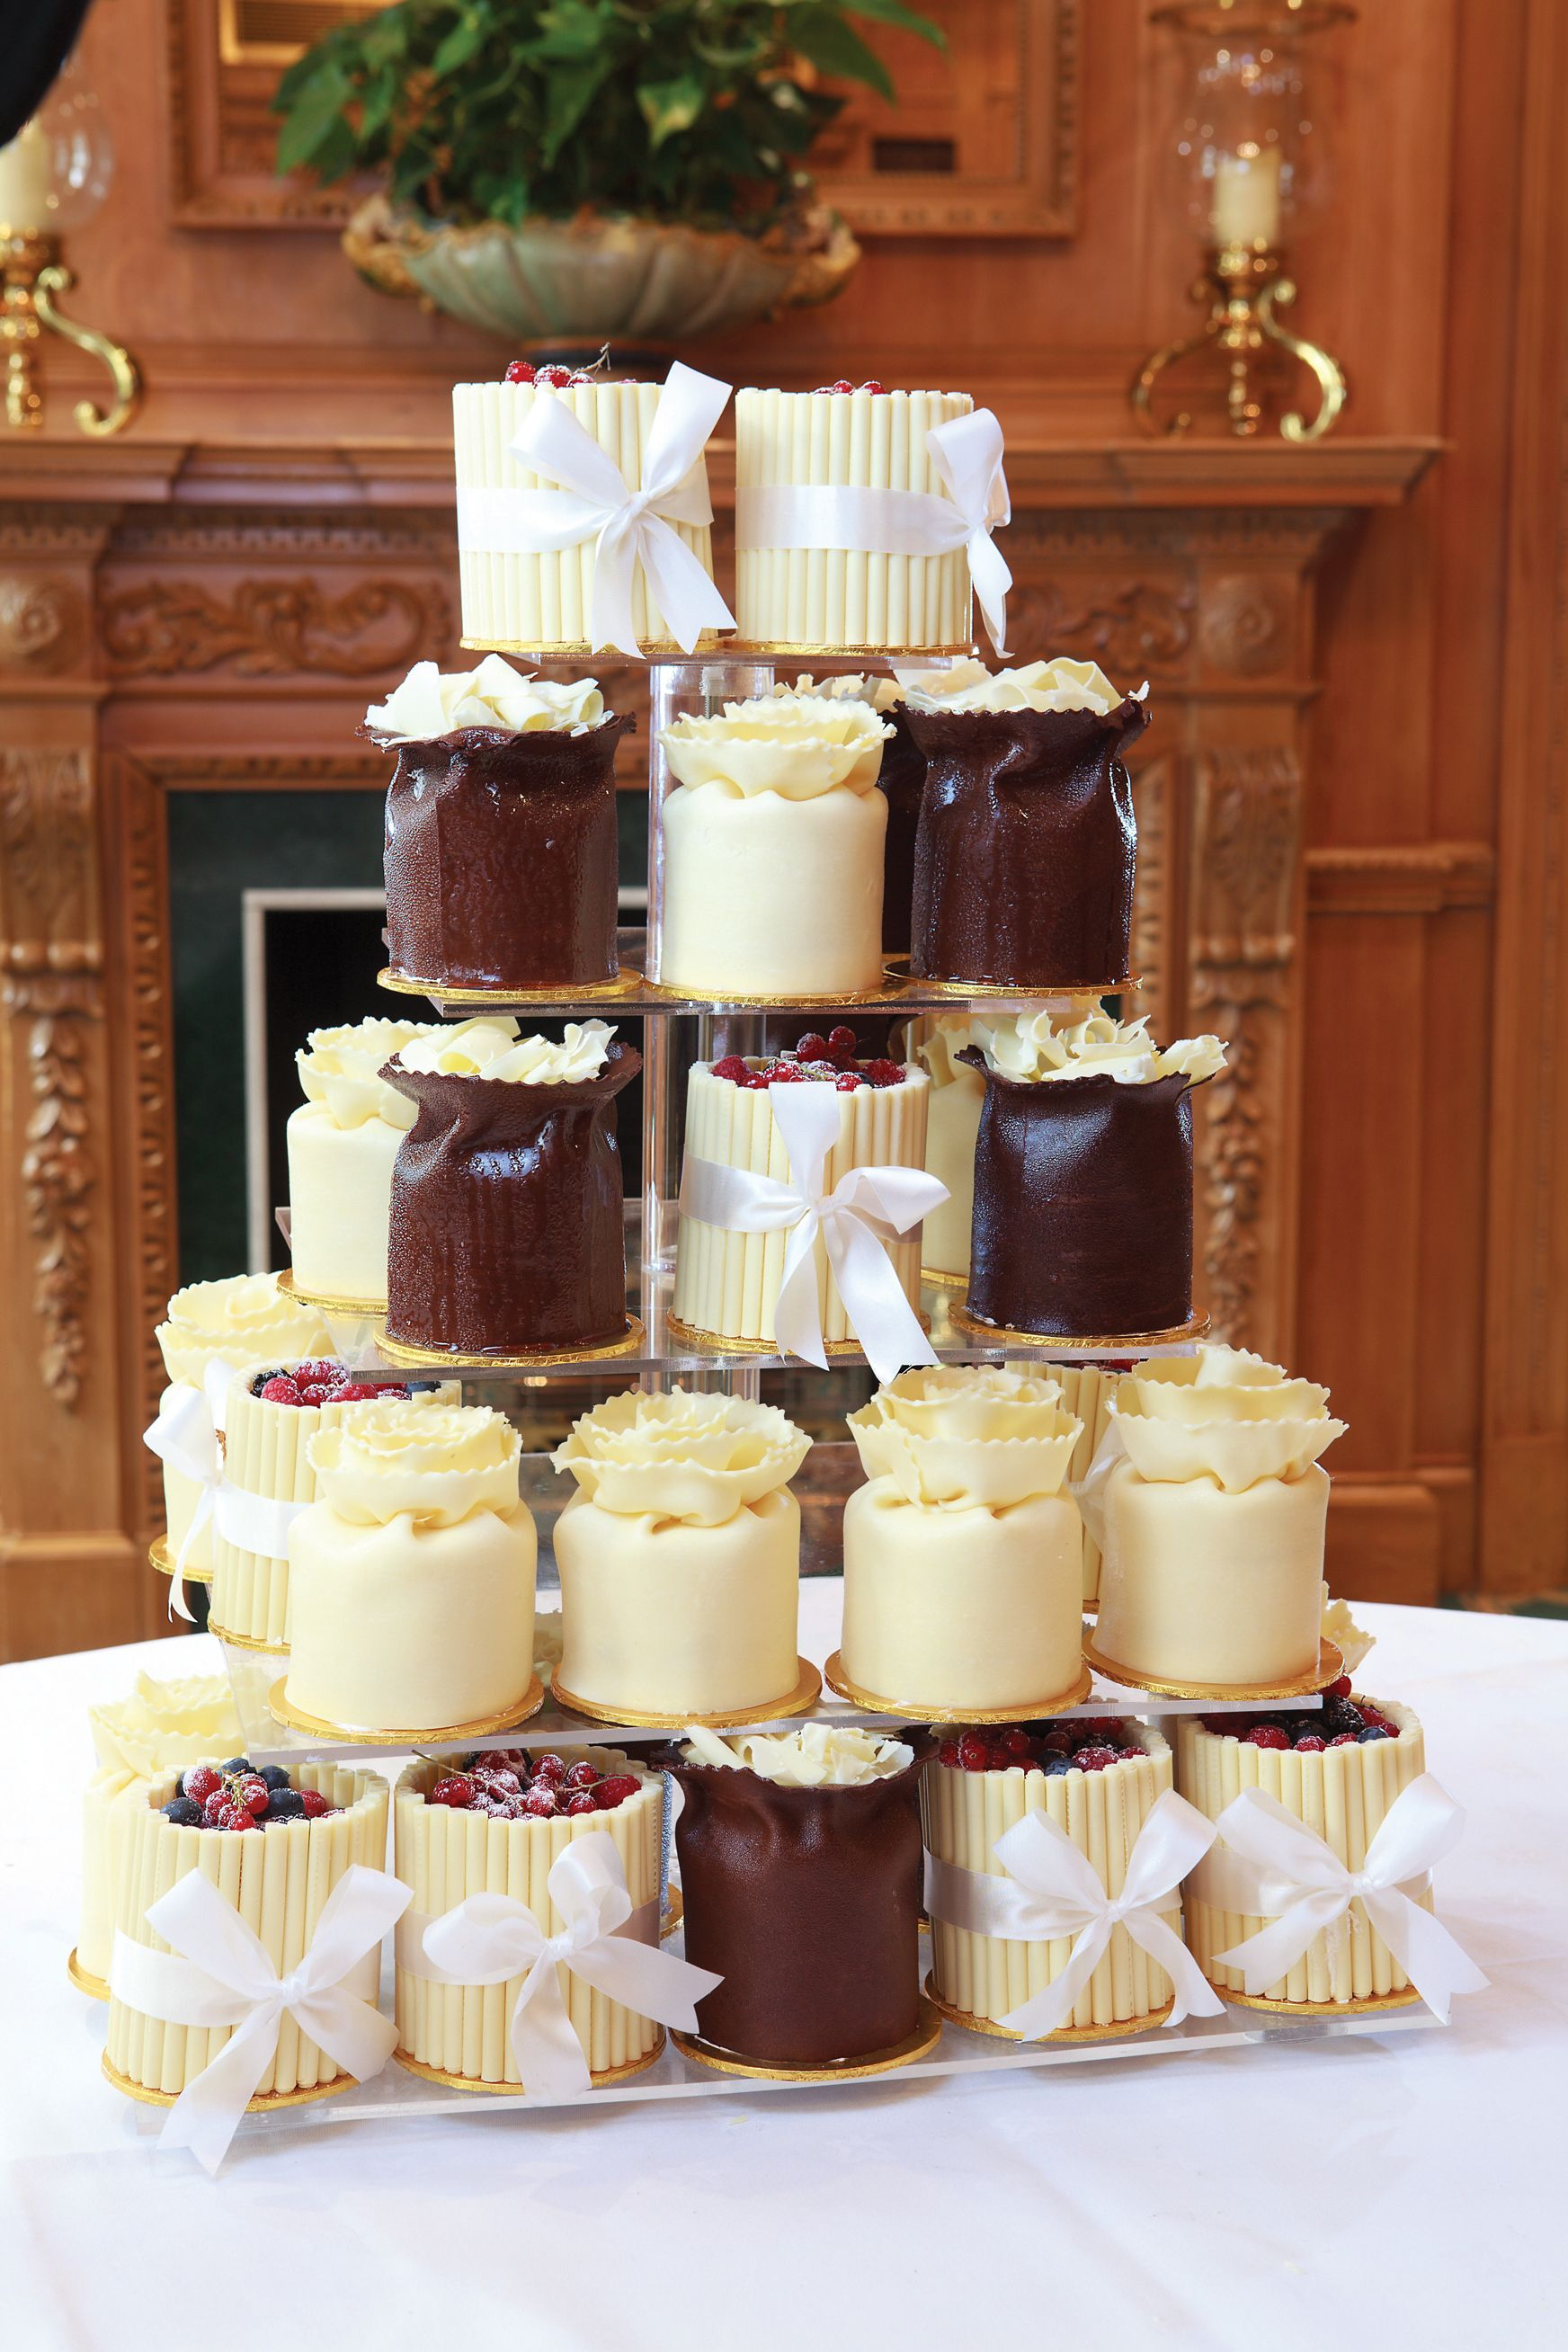 The Ultimate Cupcake Style Wedding Cake A Selection Of Patisserie Valerie Signature Chocolate Gateaux From